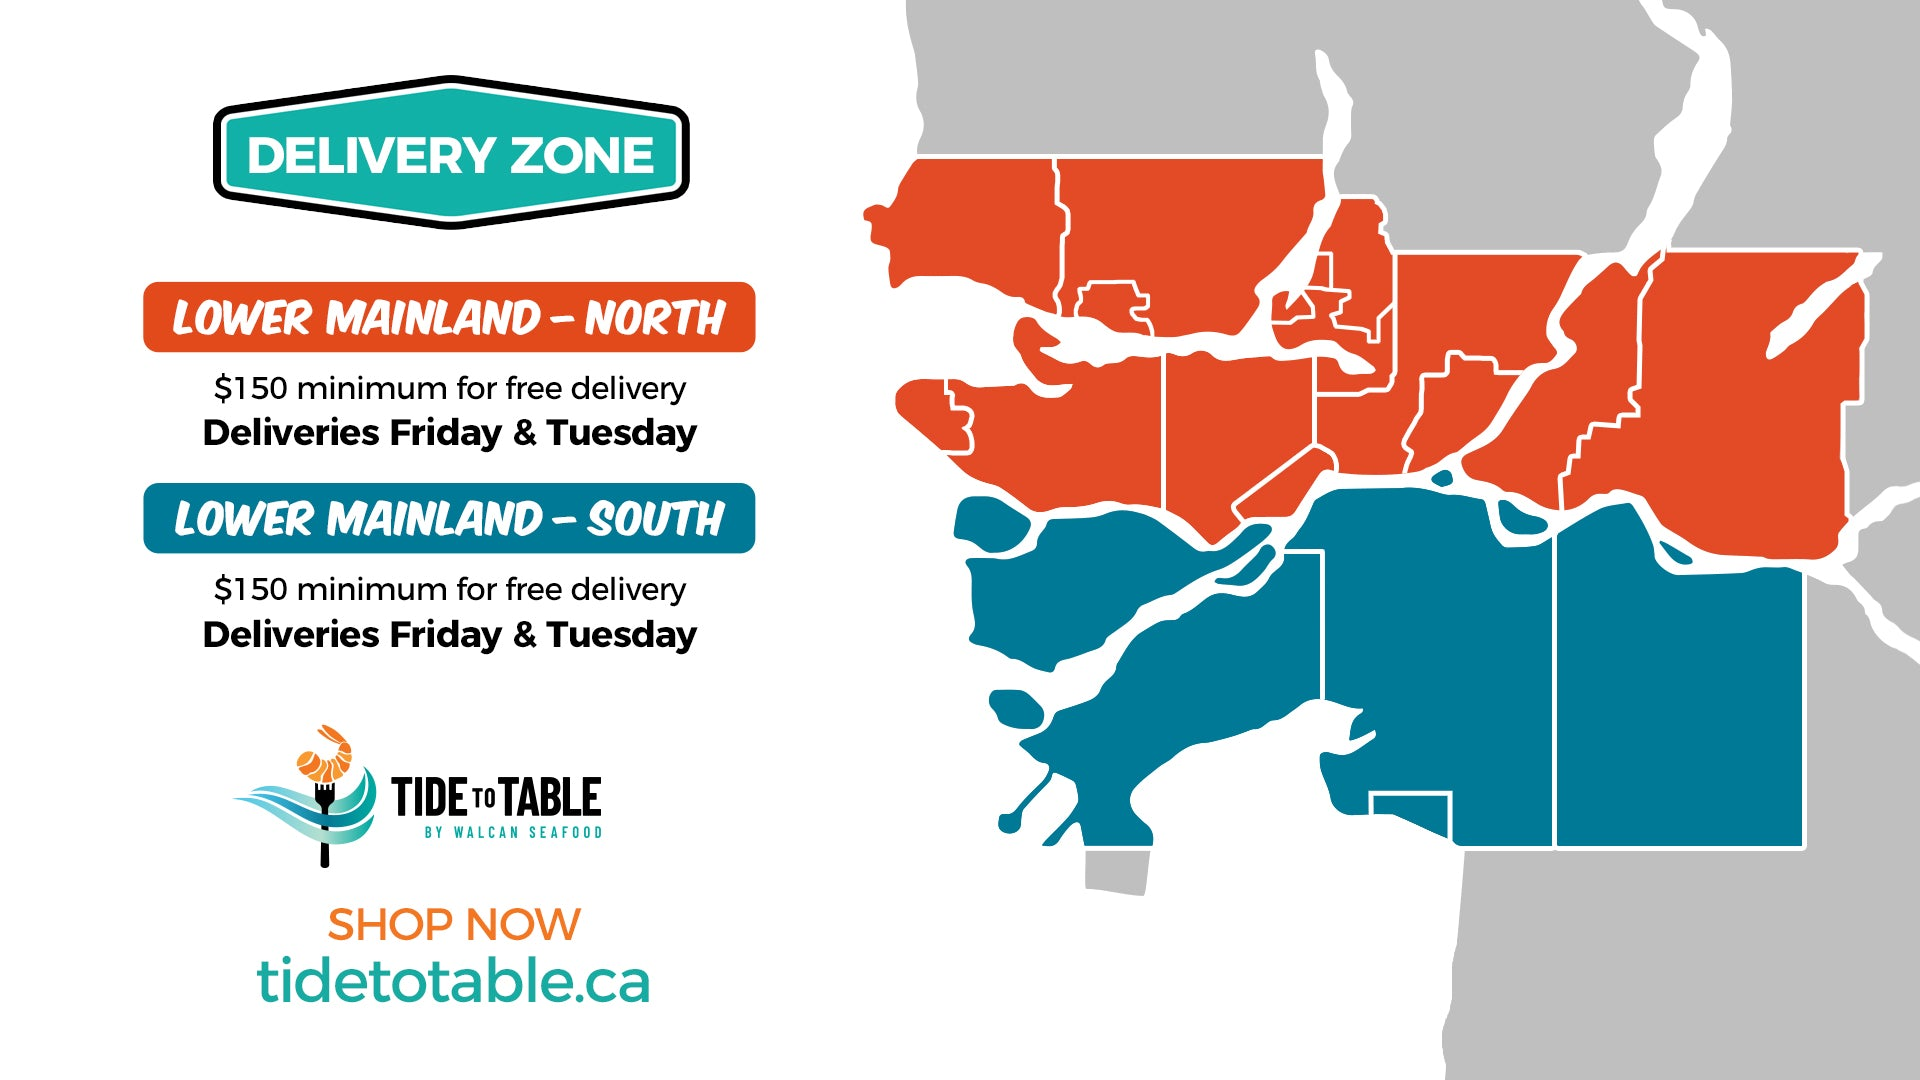 Tide to Table Delivery Areas - Lower Mainland